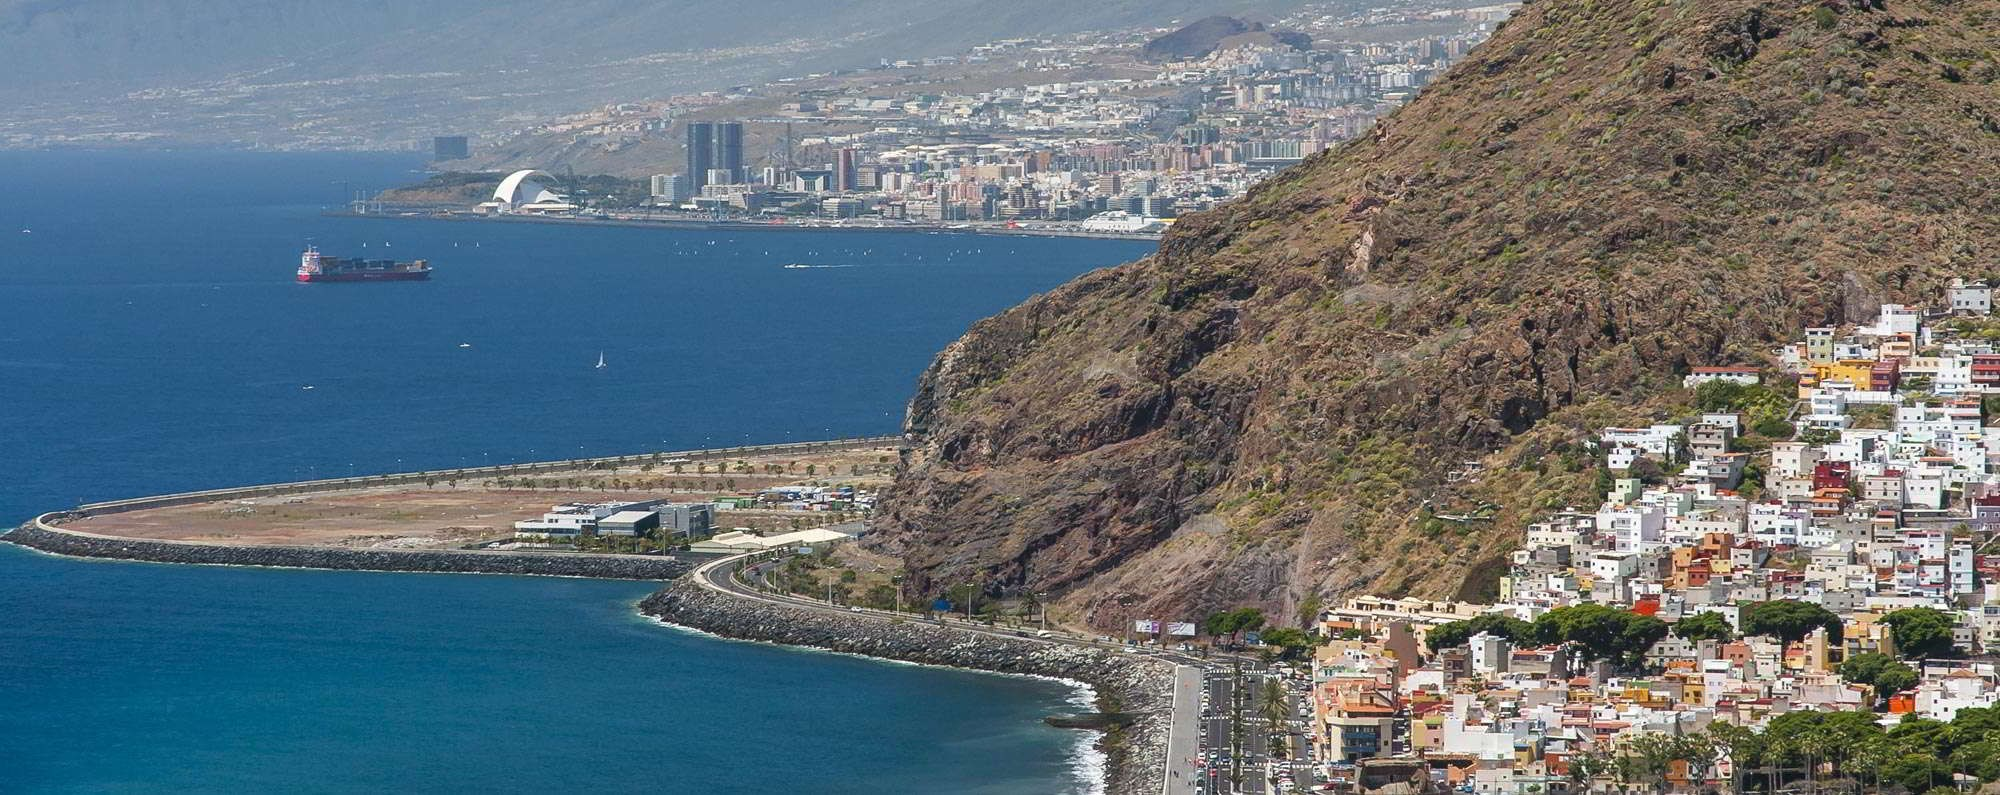 Yacht charter in Canary Islands